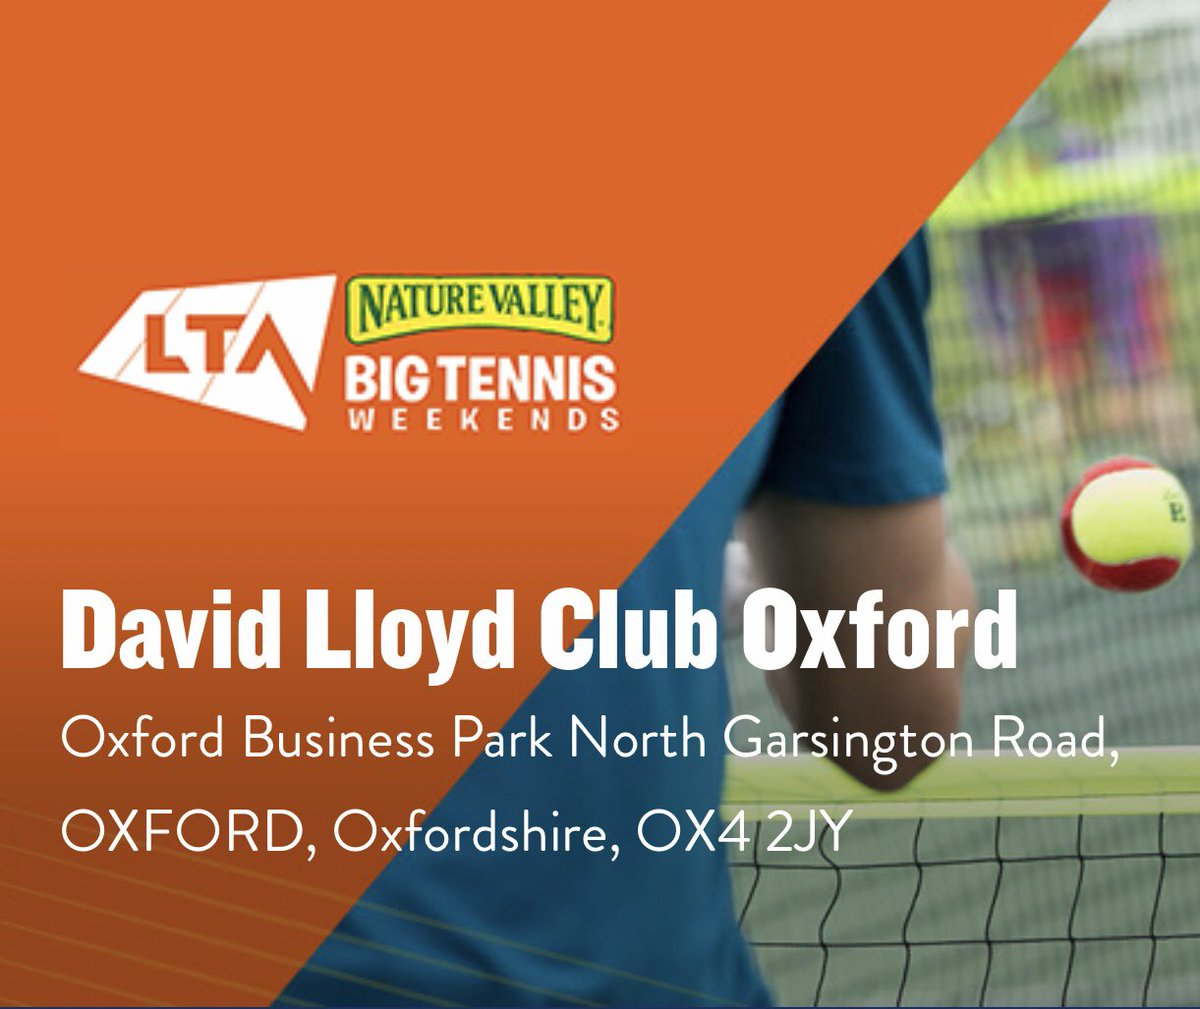 RT @TennisOxford: @DavidLloydUK Oxford are opening their doors for FREE #tennis on Saturday & Sunday 👉 https://t.co/HwyWKXnFk3 @OxTweets @TheOxfordMail @activeoxon @actsoxfordshire @ActiveWomenOxon @the_LTA @babolat